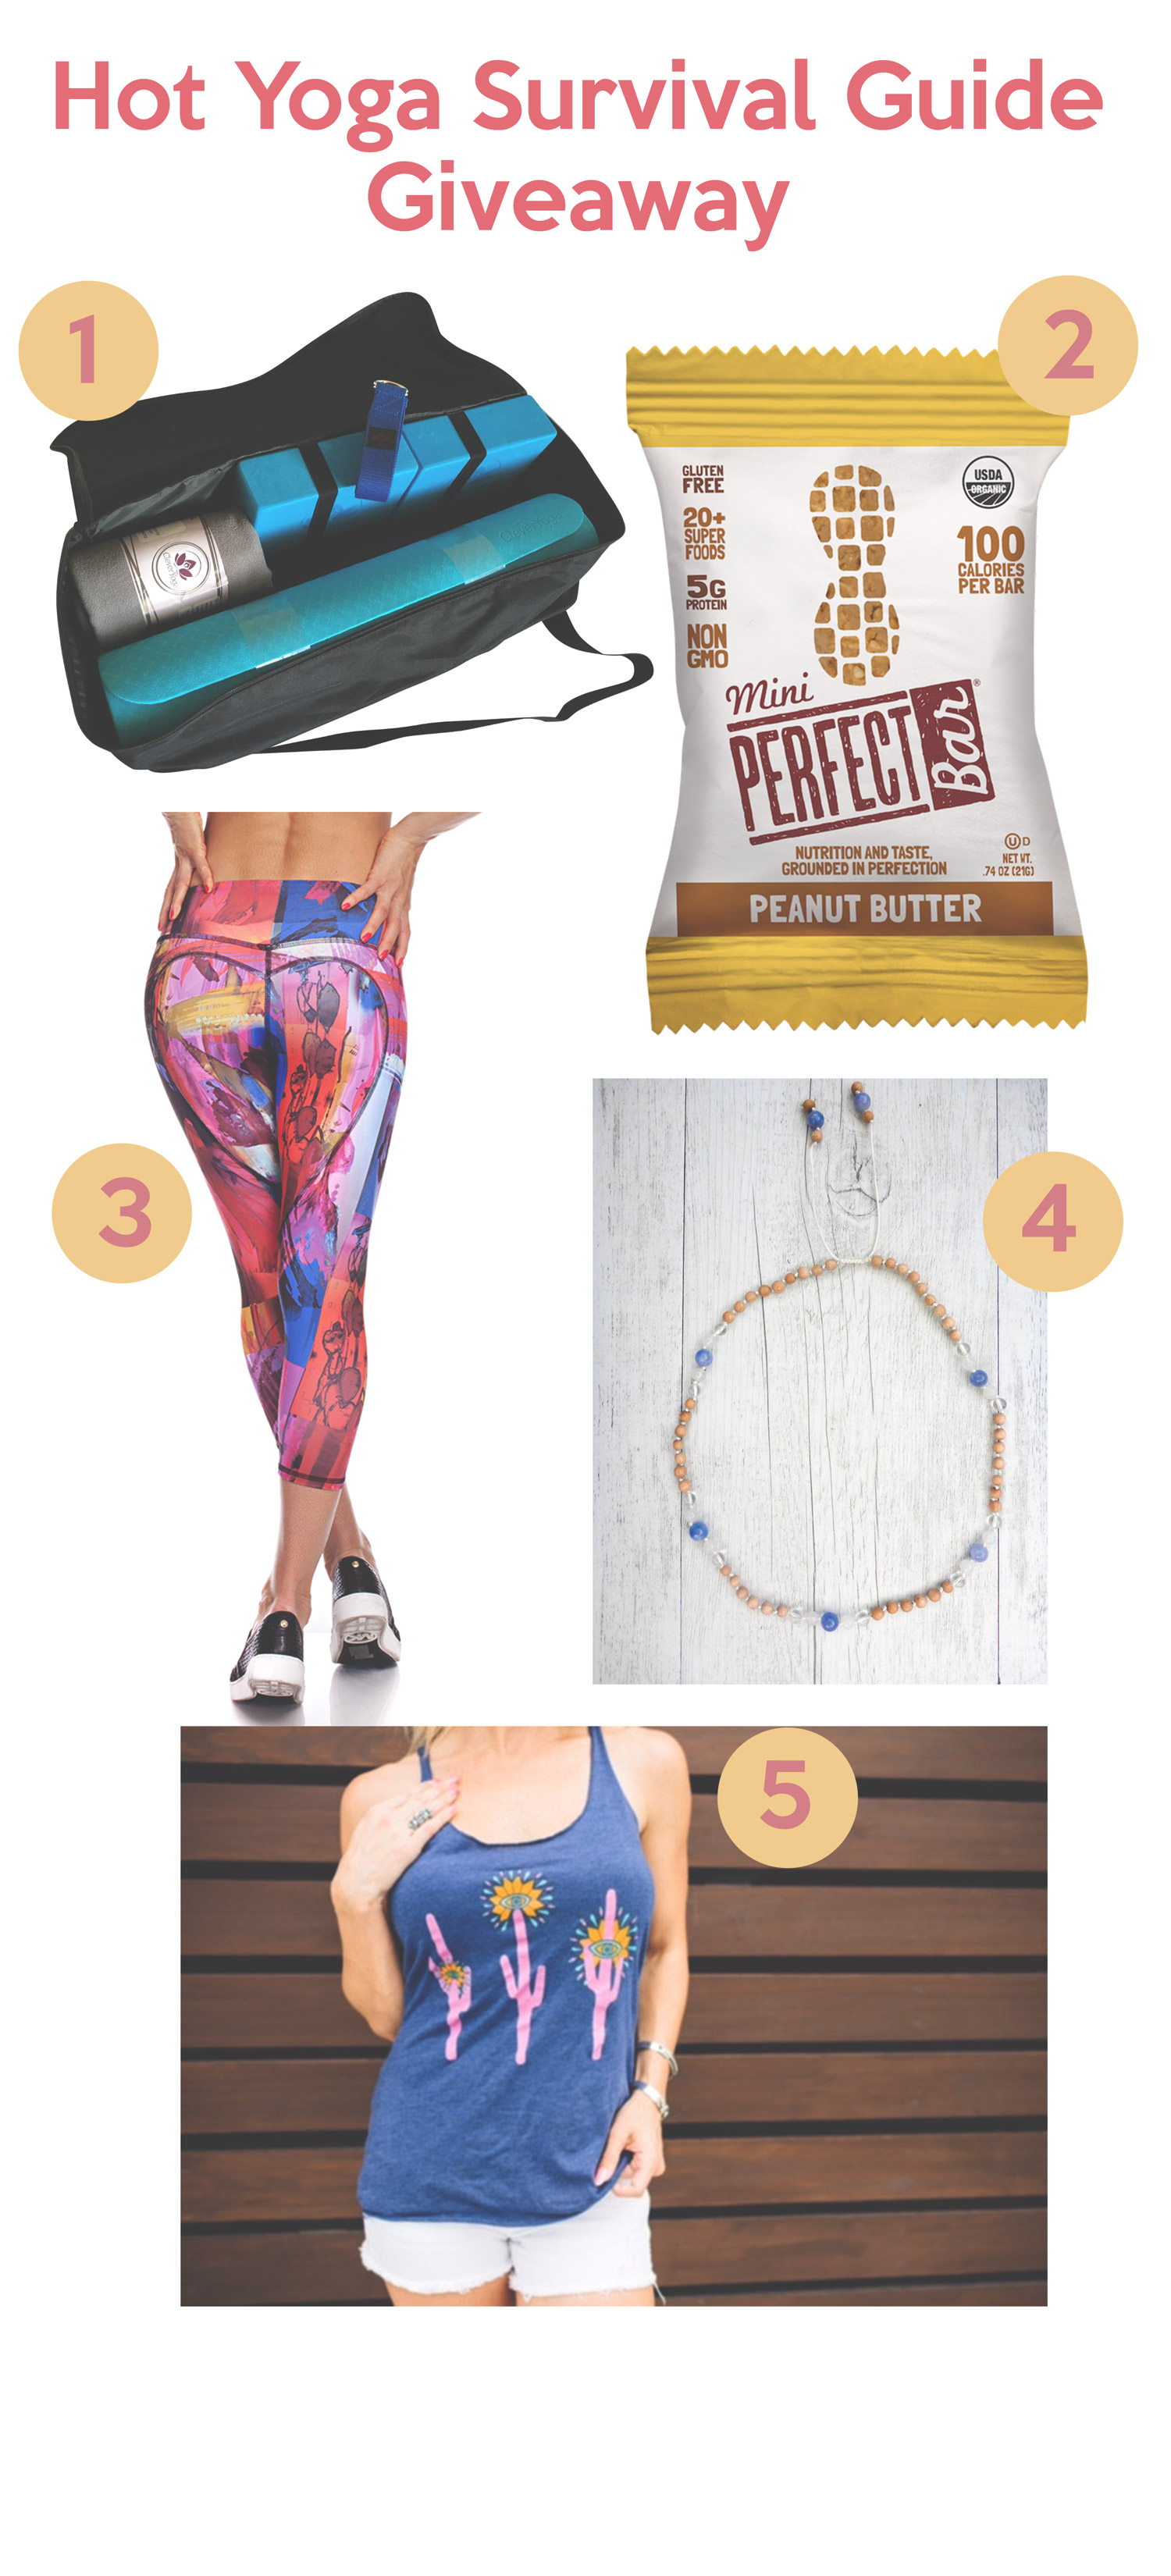 Hot Yoga Survival Guide Giveaway